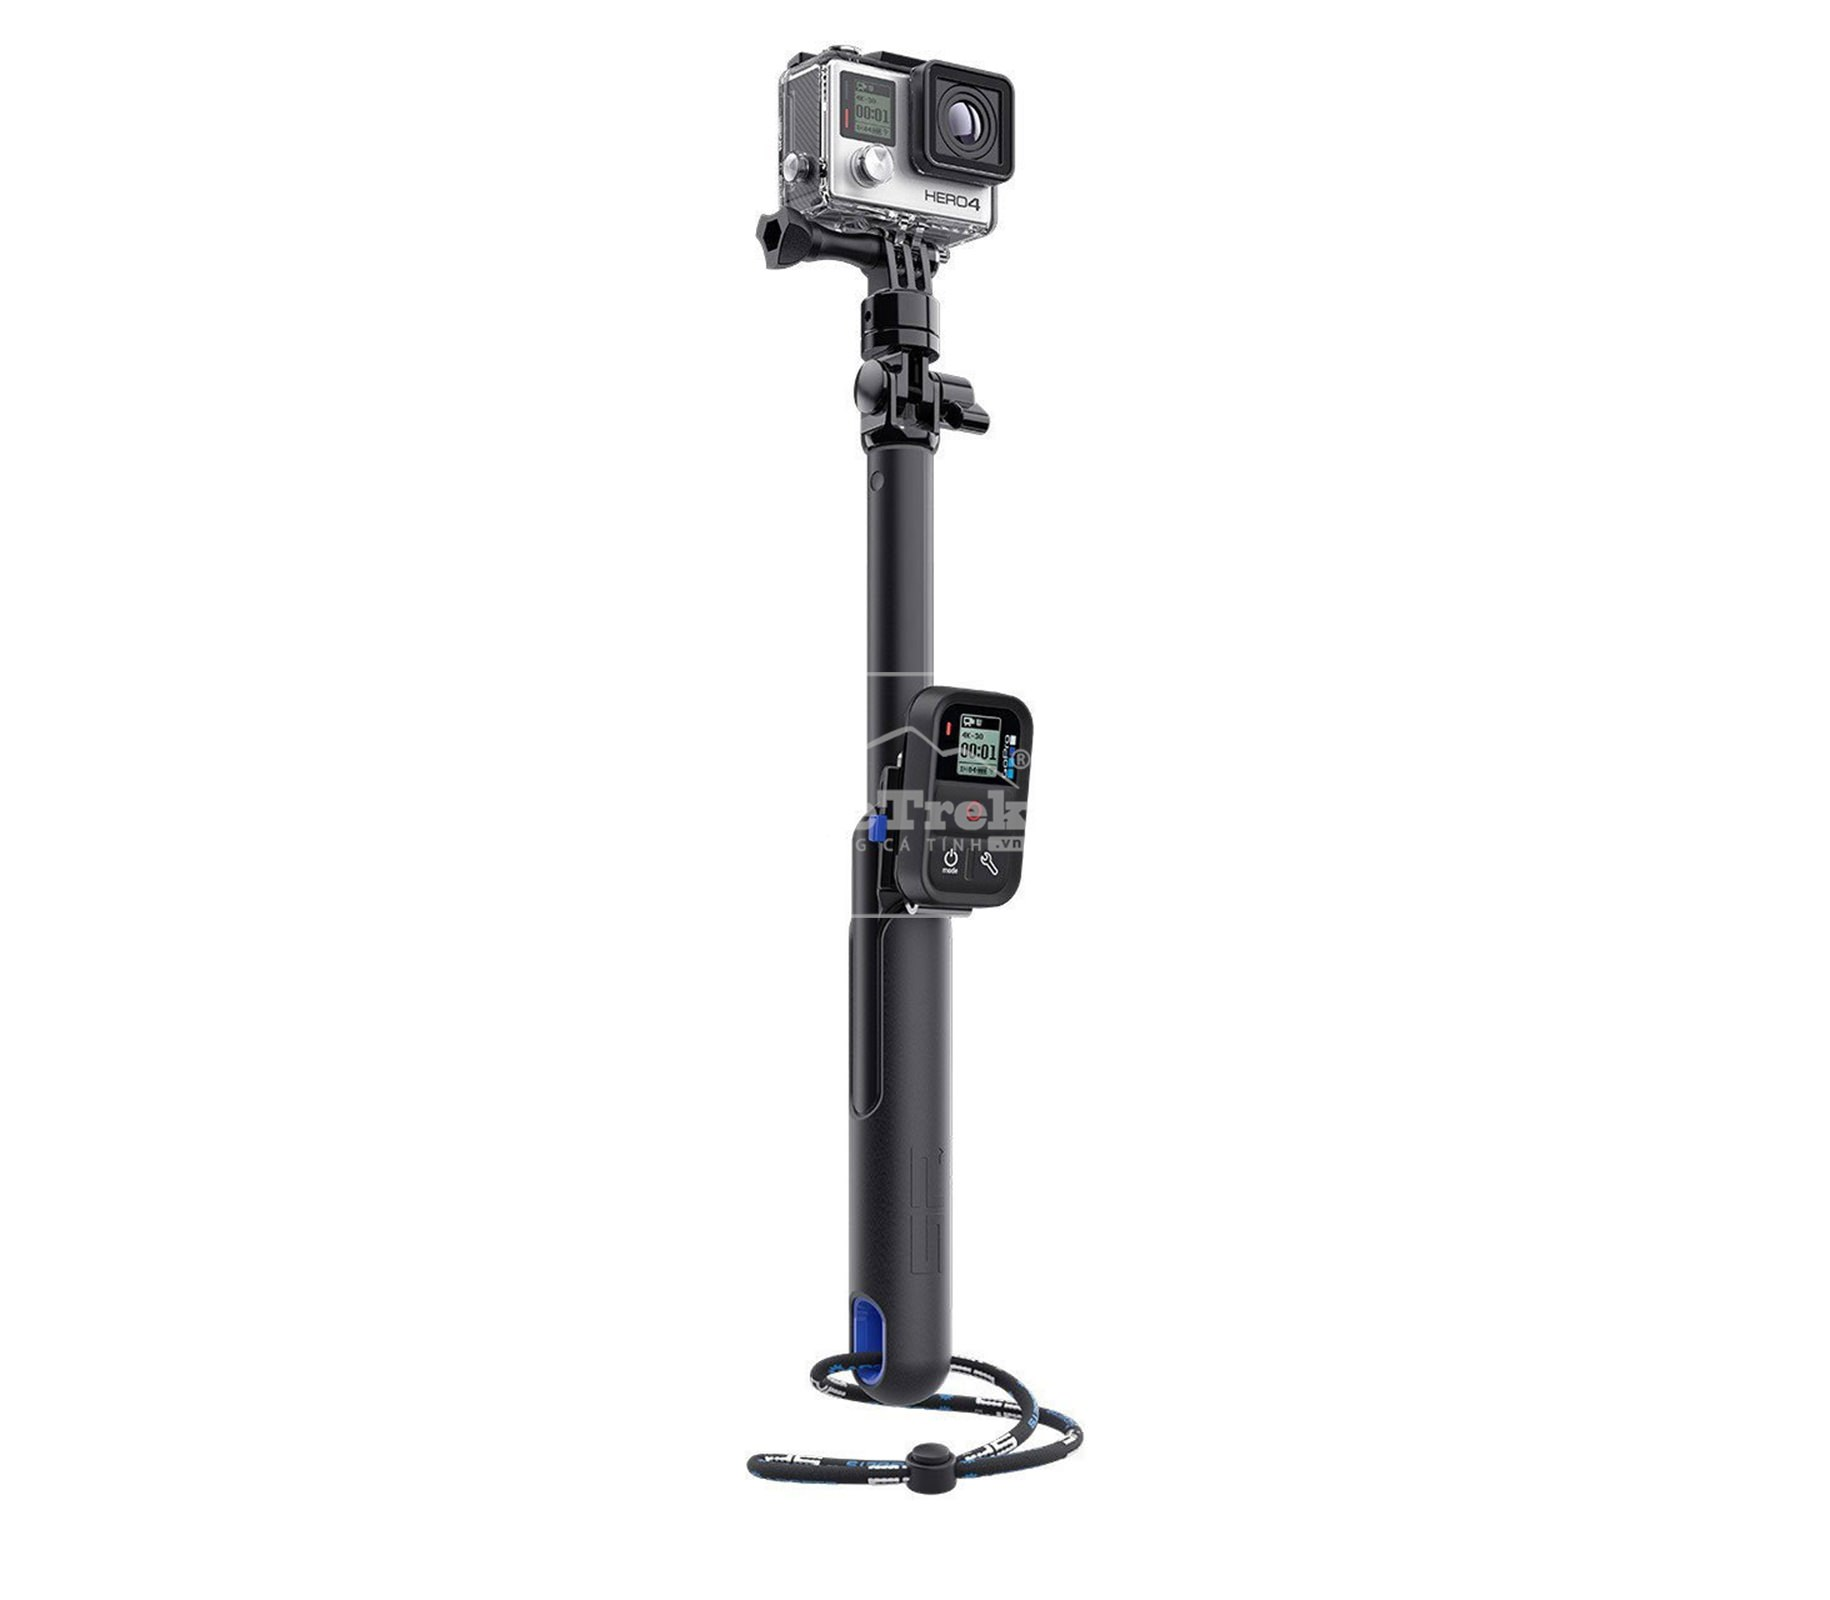 gay-tu-suong-may-quay-gopro-sp-smart-pole-39-6325-wetrek.vn-3